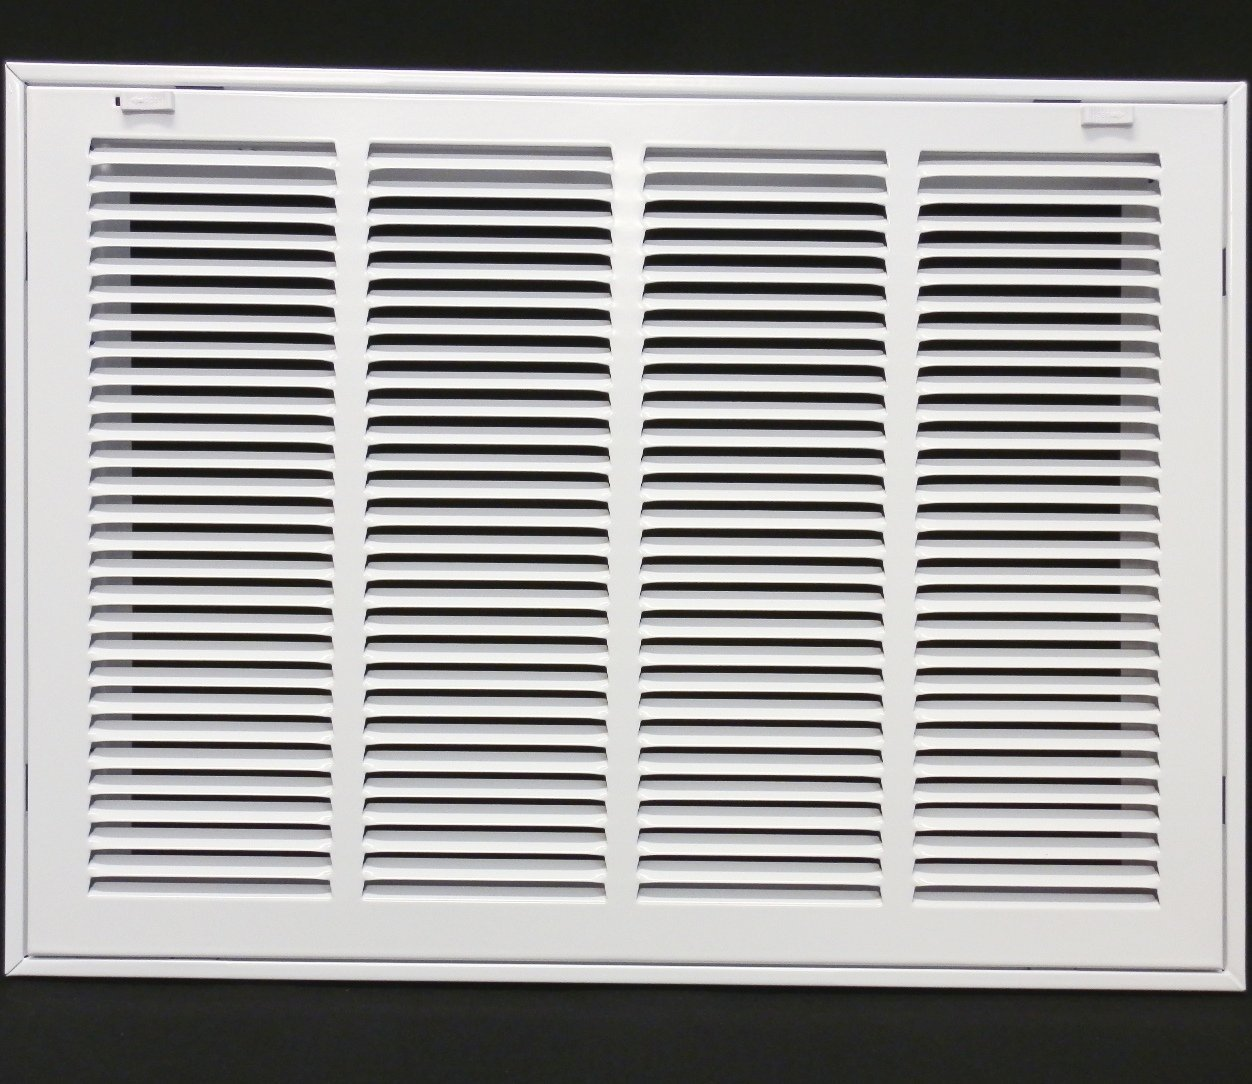 20'' X 16 Steel Return Air Filter Grille for 1'' Filter - Removable Face/Door - HVAC DUCT COVER - Flat Stamped Face - White [Outer Dimensions: 22.5''w X 18.5''h]